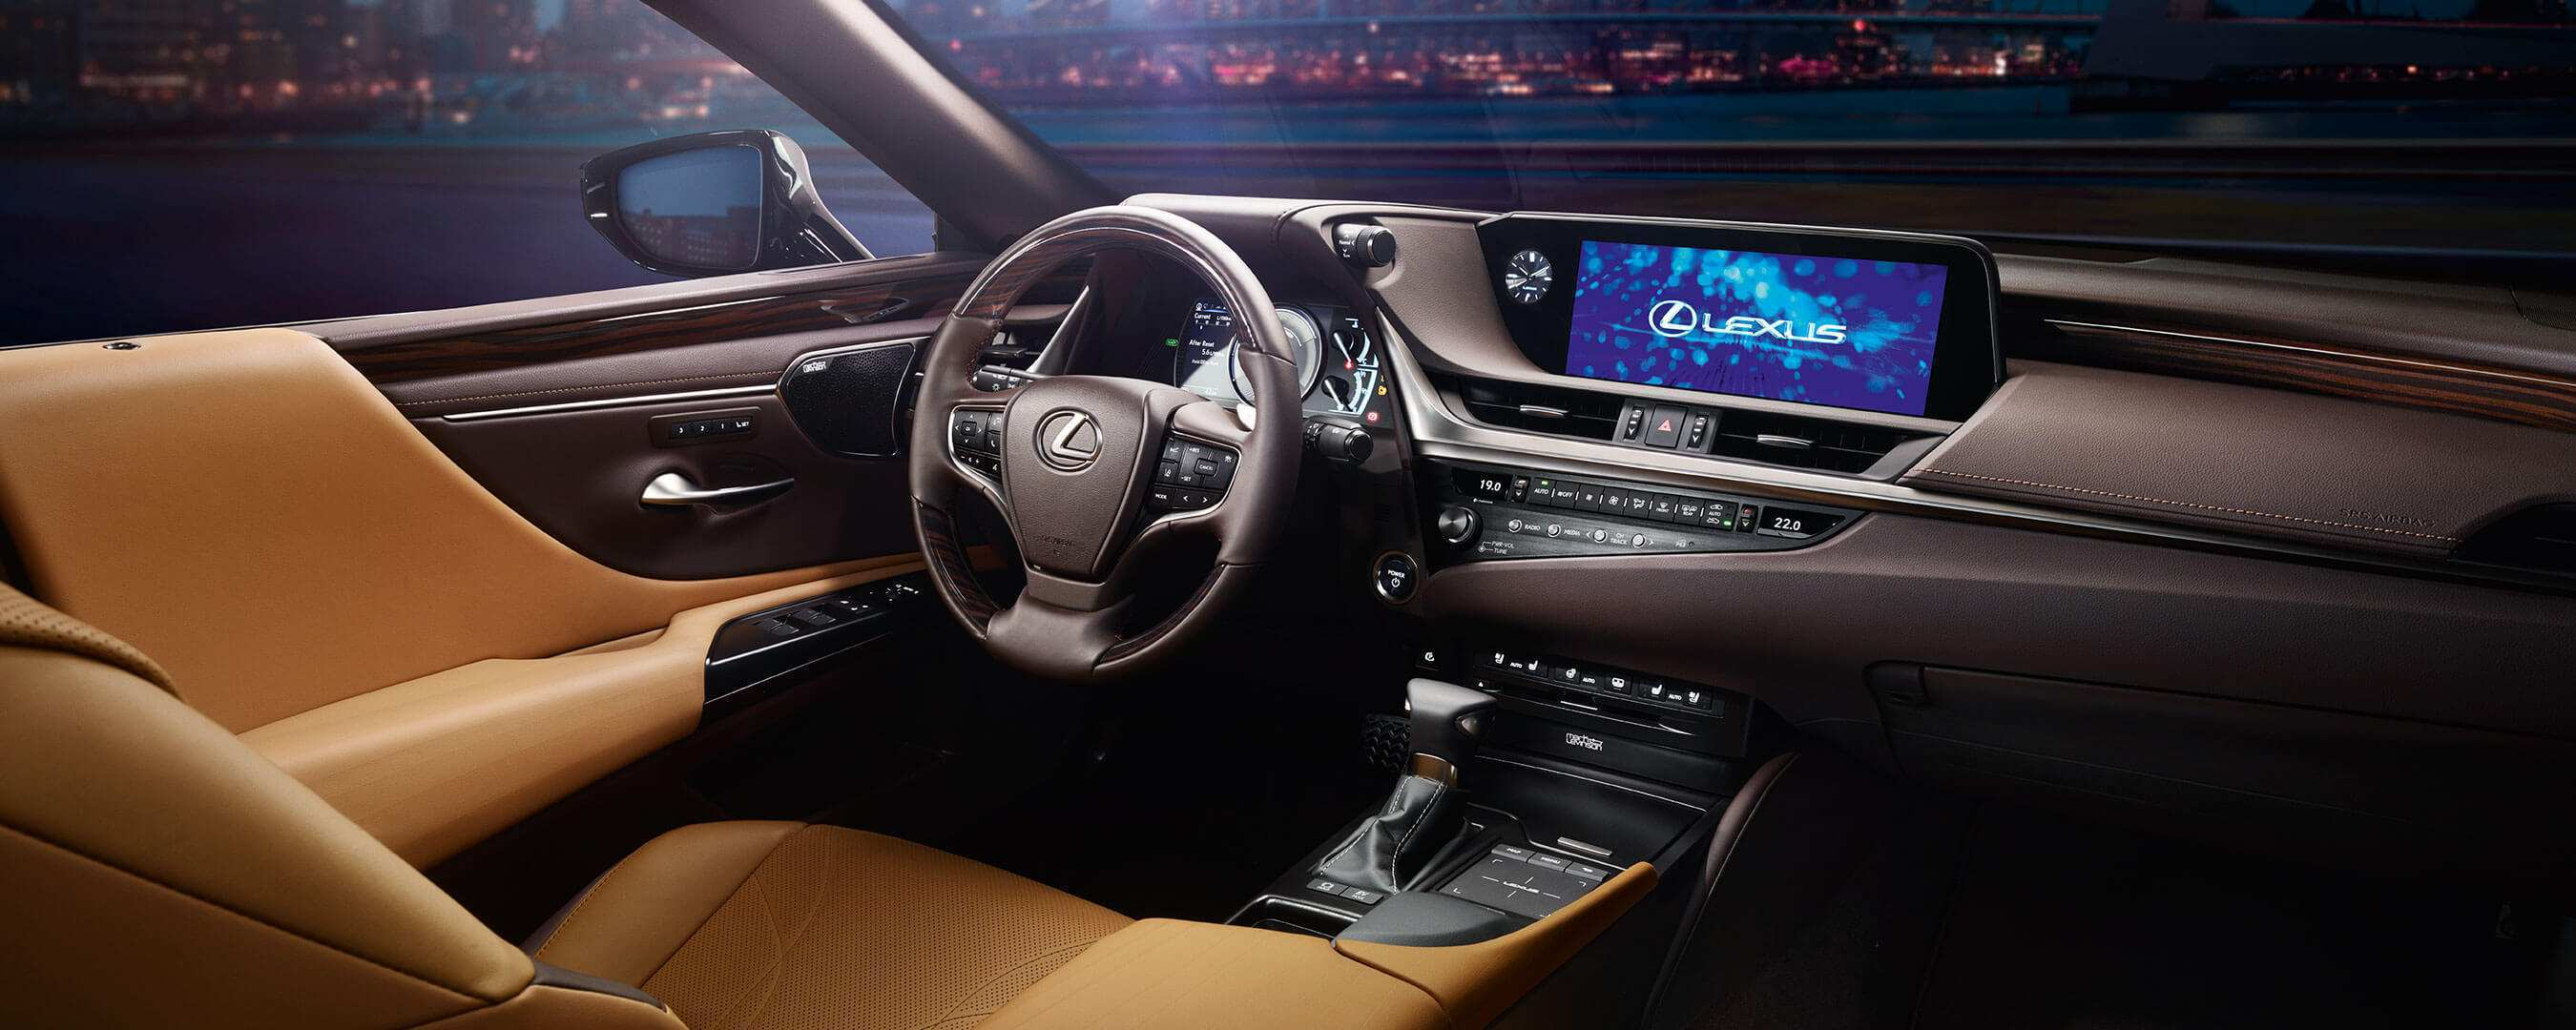 17 Concept of Lexus 2019 Es Interior Release Date with Lexus 2019 Es Interior